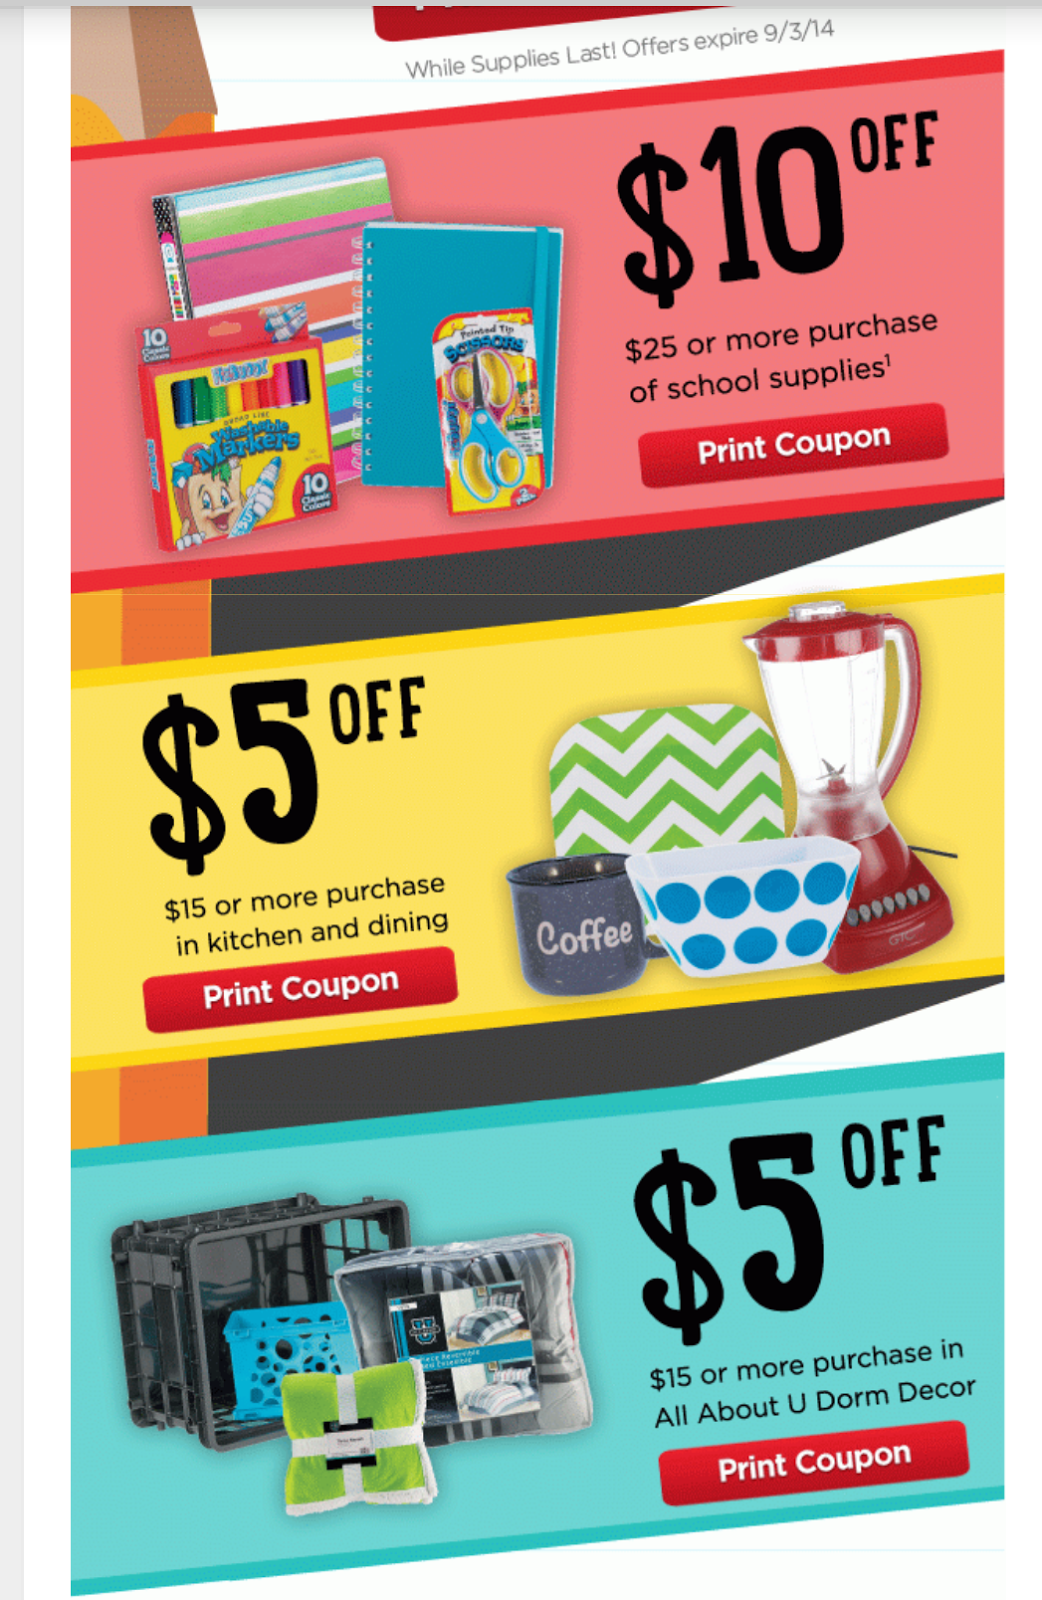 photo relating to School Supplies Coupons Printable named Melissas Coupon Discounts: HEB $20 relevance of printable